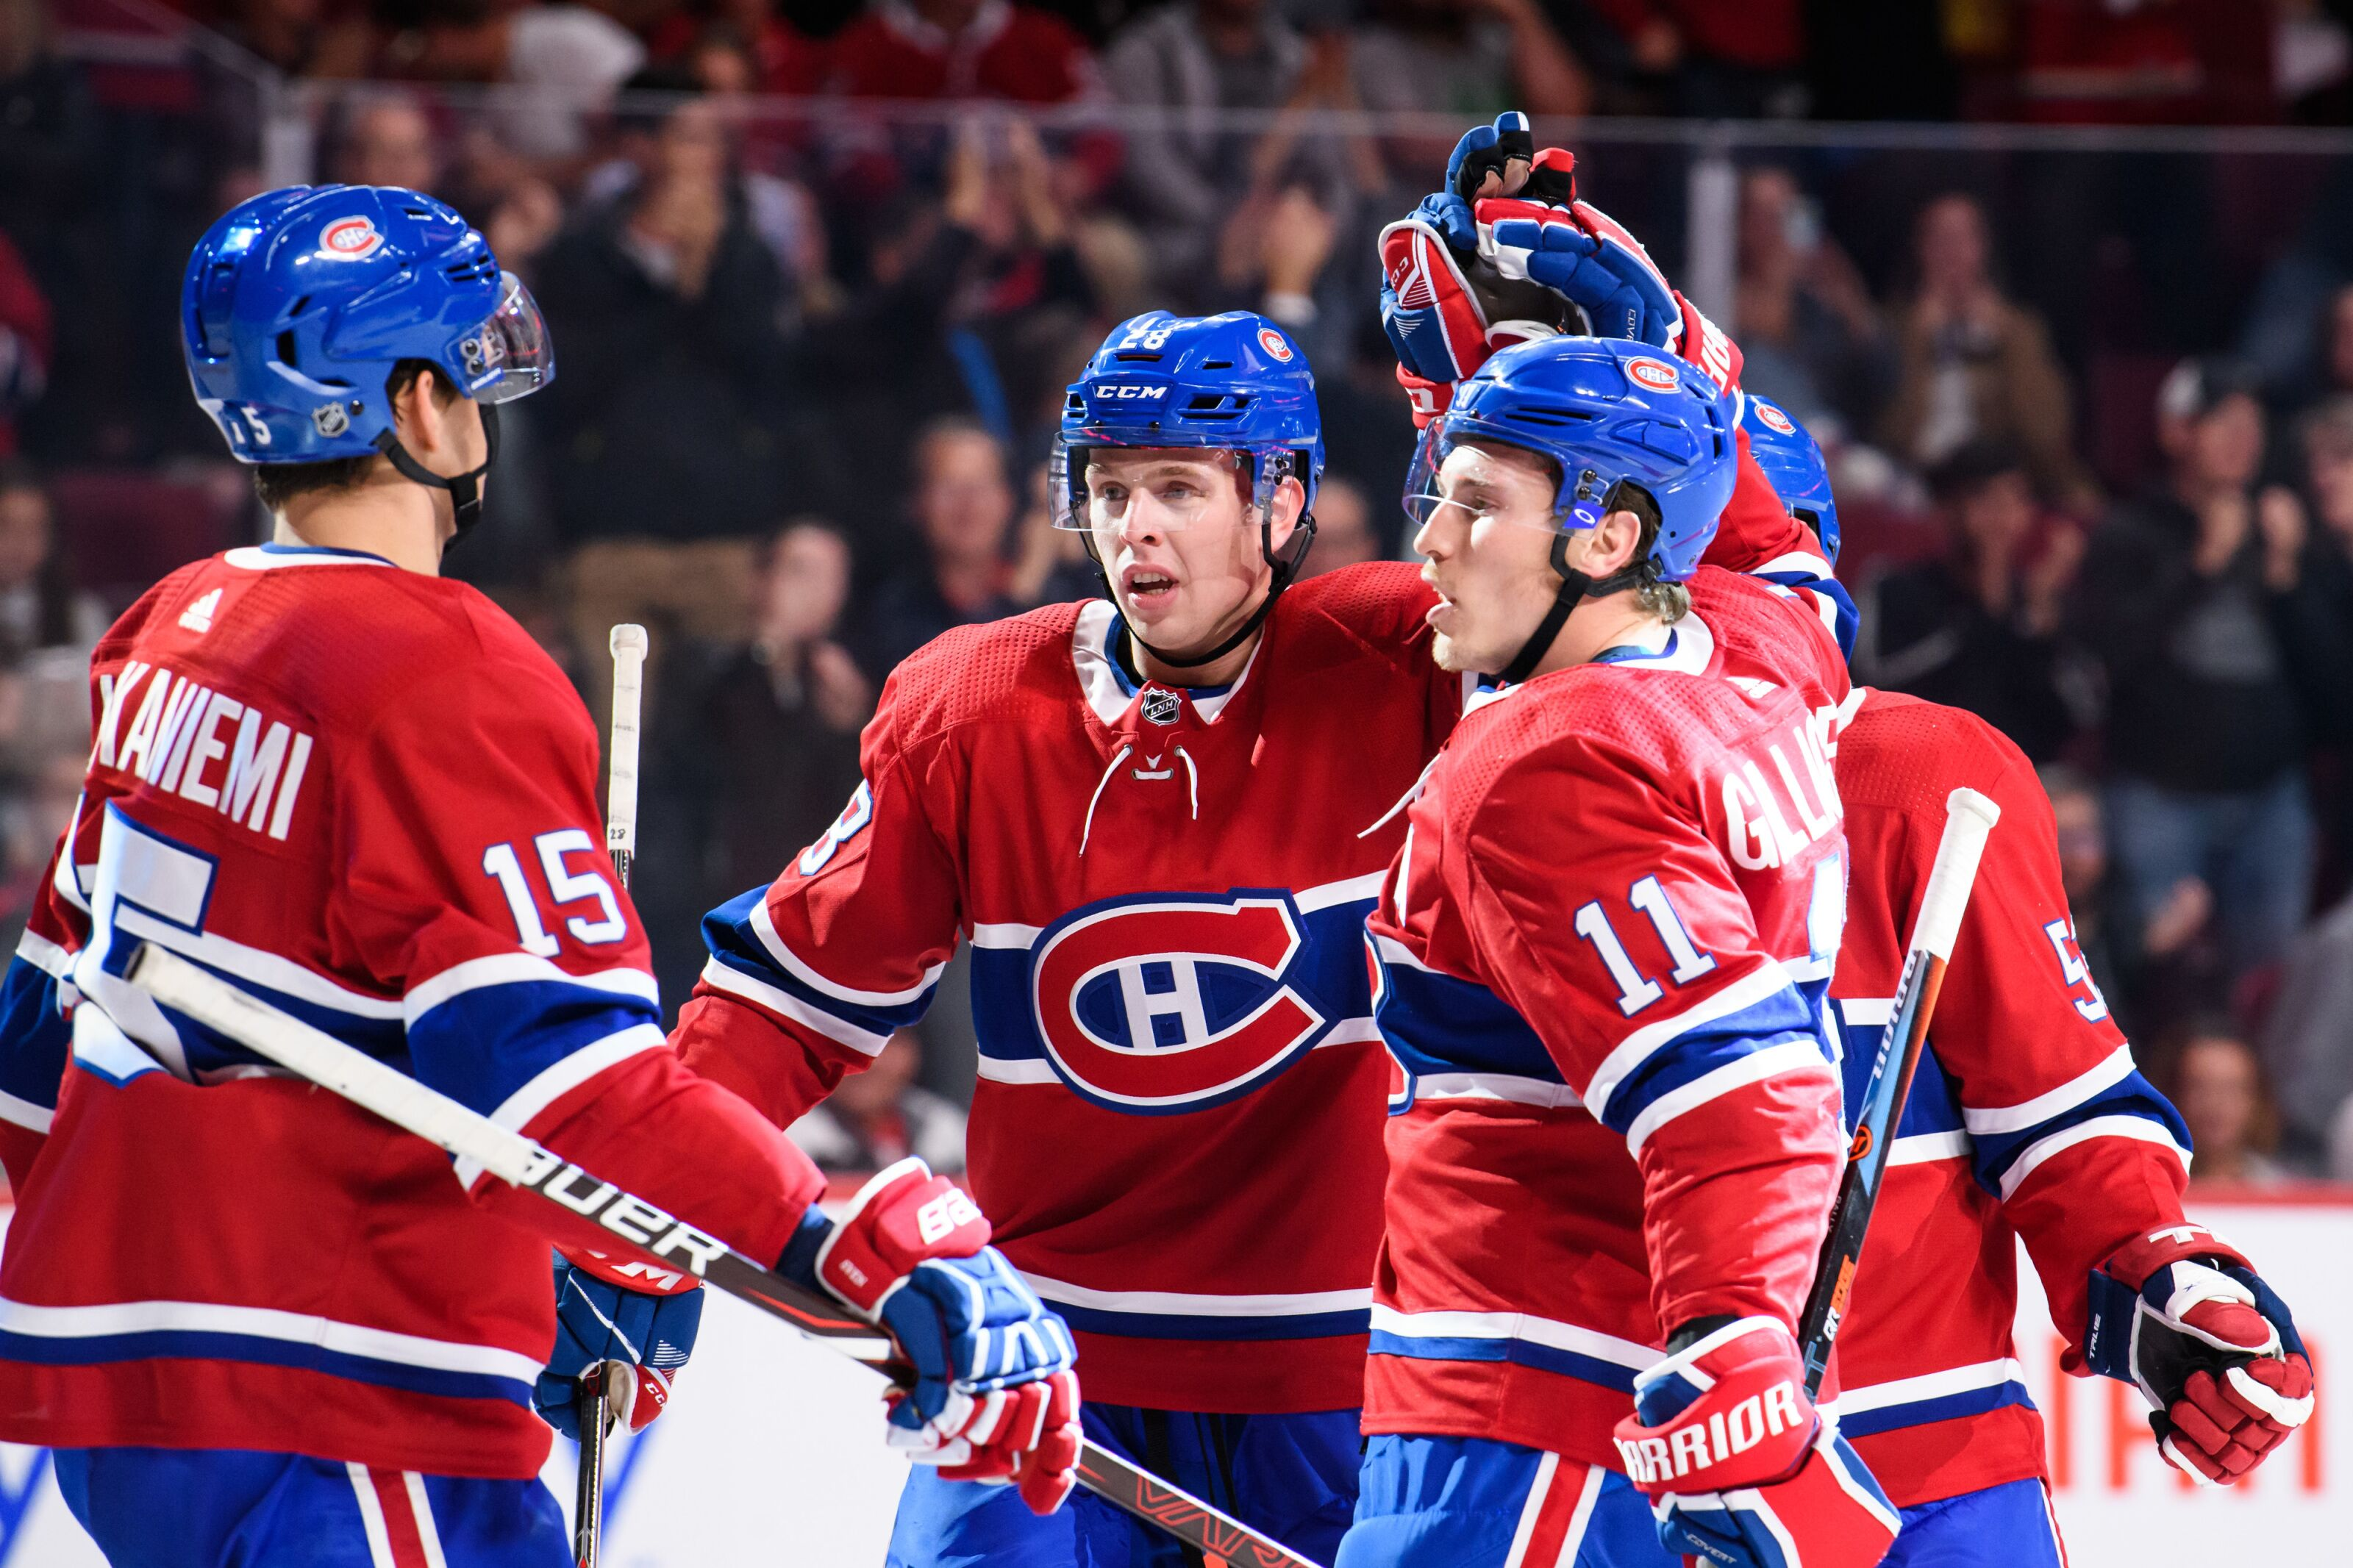 MONTREAL, QC - SEPTEMBER 26: Montreal Canadiens right wing Brendan Gallagher (11) celebrates with teammates Mike Reilly (28) and Jesperi Kotkaniemi (15) during the second period of the NHL preseason game between the Toronto Maple Leafs and the Montreal Canadiens on September 26, 2018, at the Bell Centre in Montreal, QC (Photo by Vincent Ethier/Icon Sportswire via Getty Images)